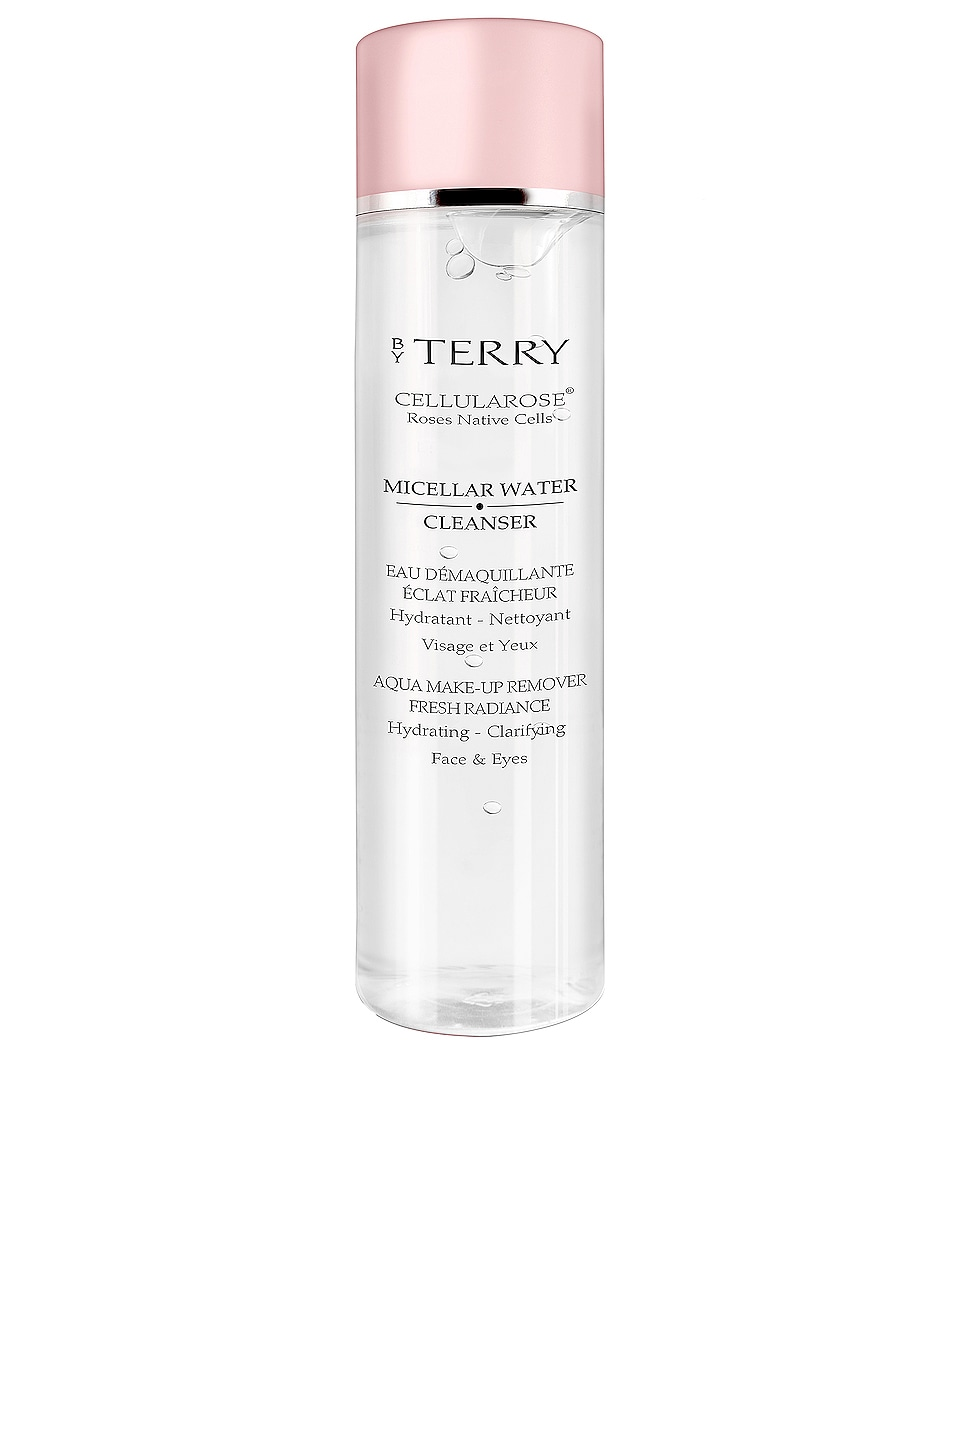 By Terry Cellularose Micellar Water Cleanser